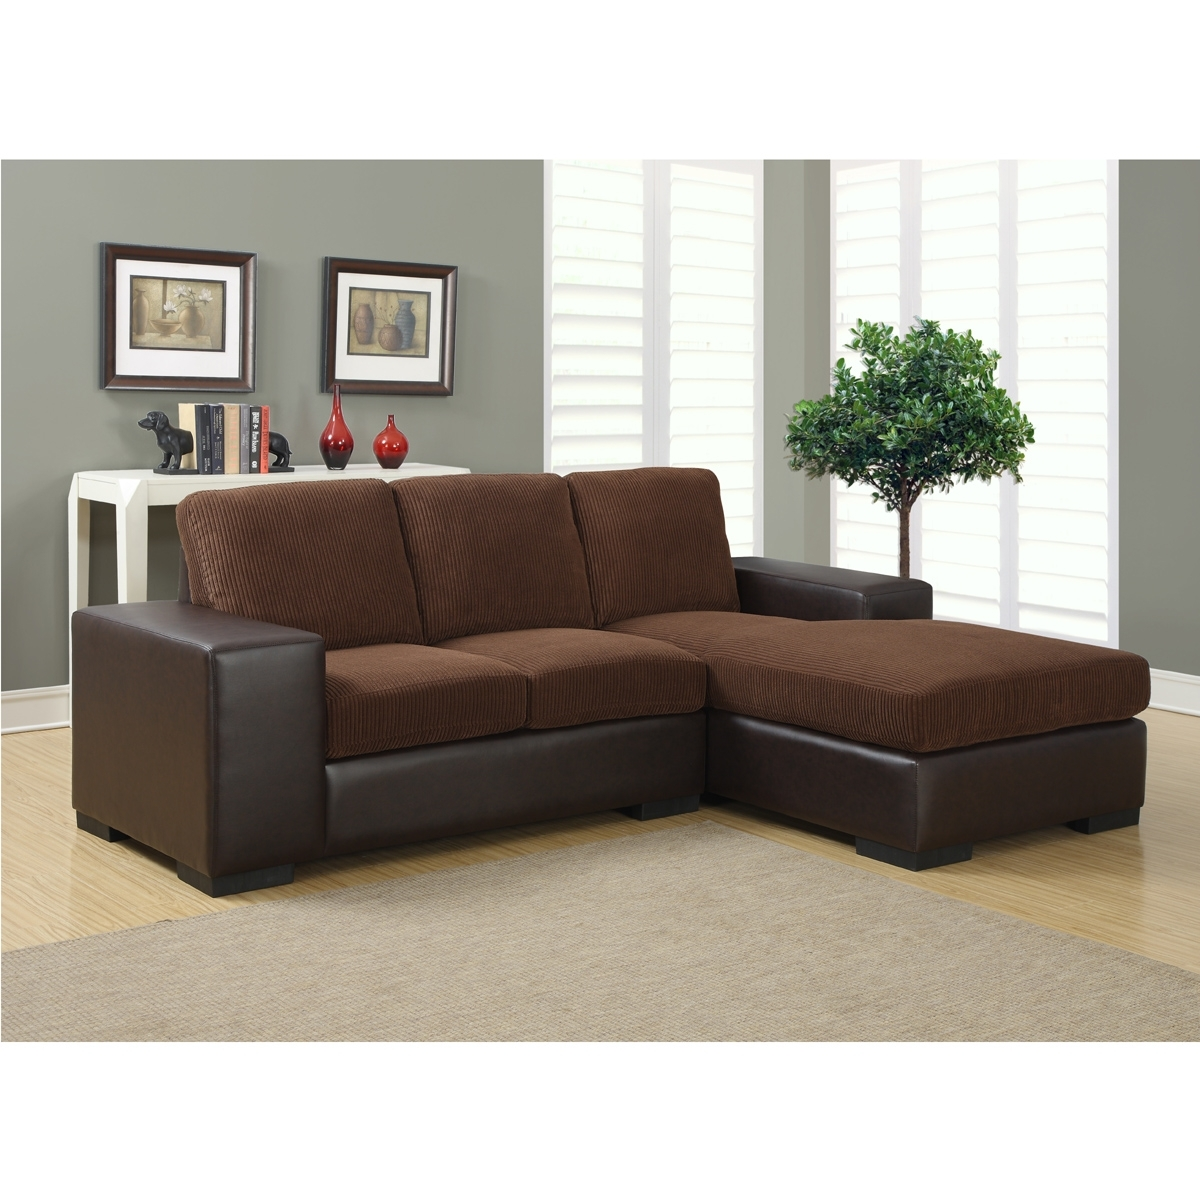 Jacob Sectional Sofa | Modern Sectional Sofas In Brown Corduroy With Regard To Sectional Sofas For Condos (View 4 of 10)